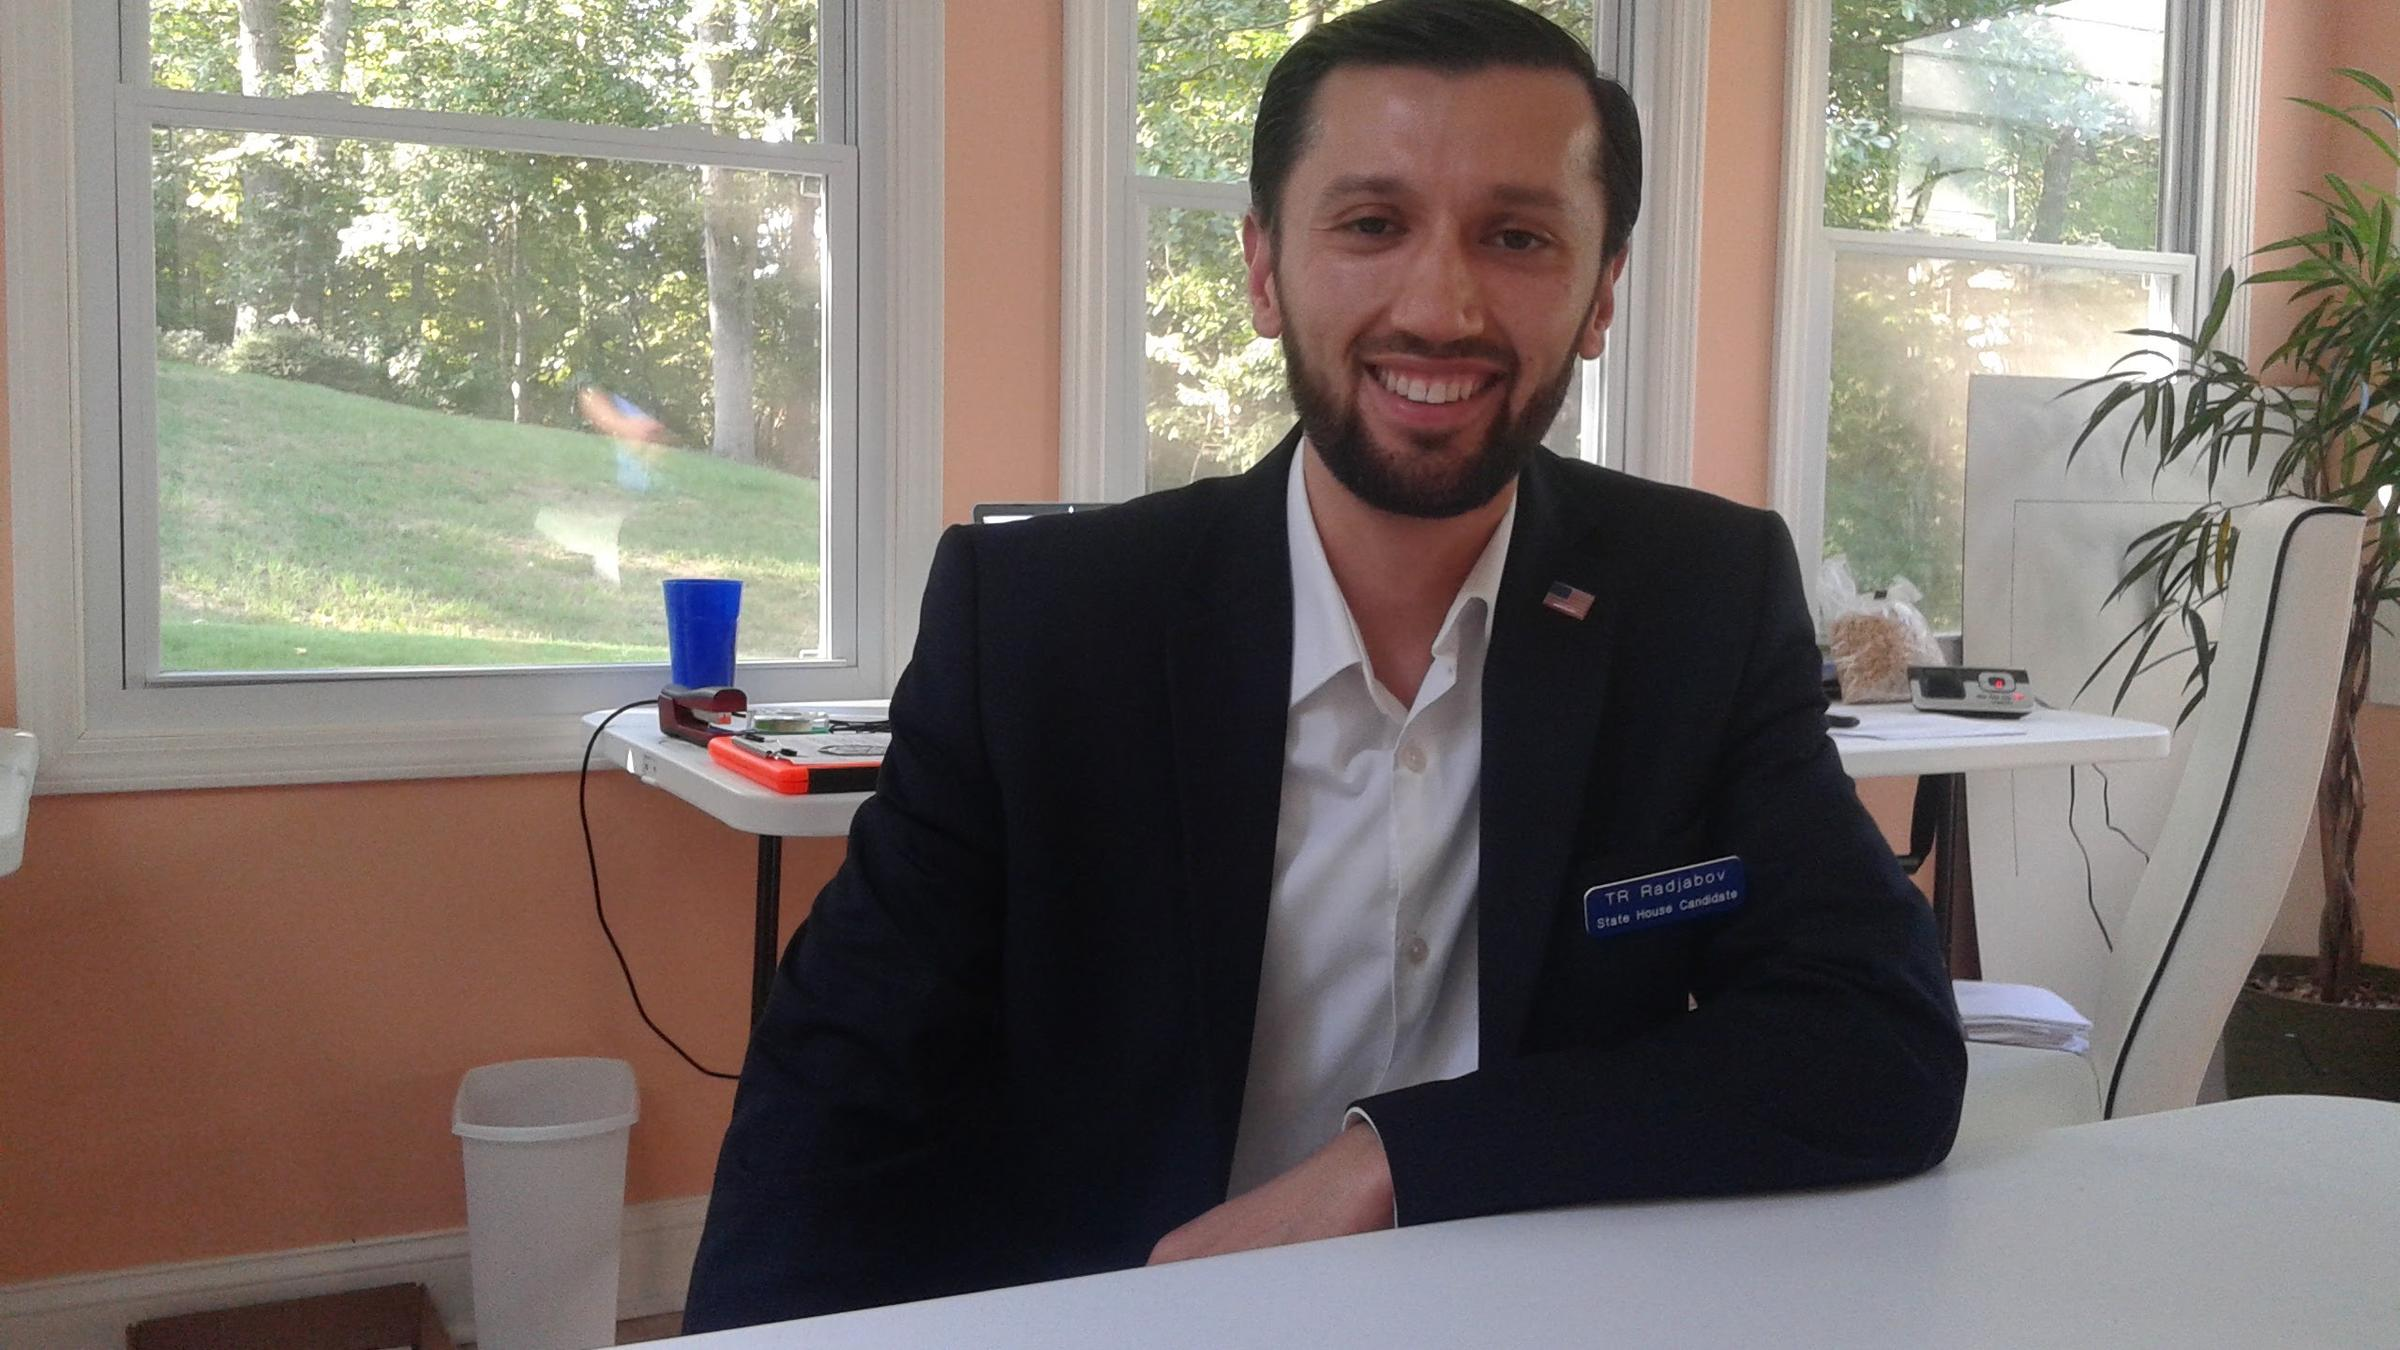 T R  Radjabov Aspires To Become First Muslim Ga  Legislator